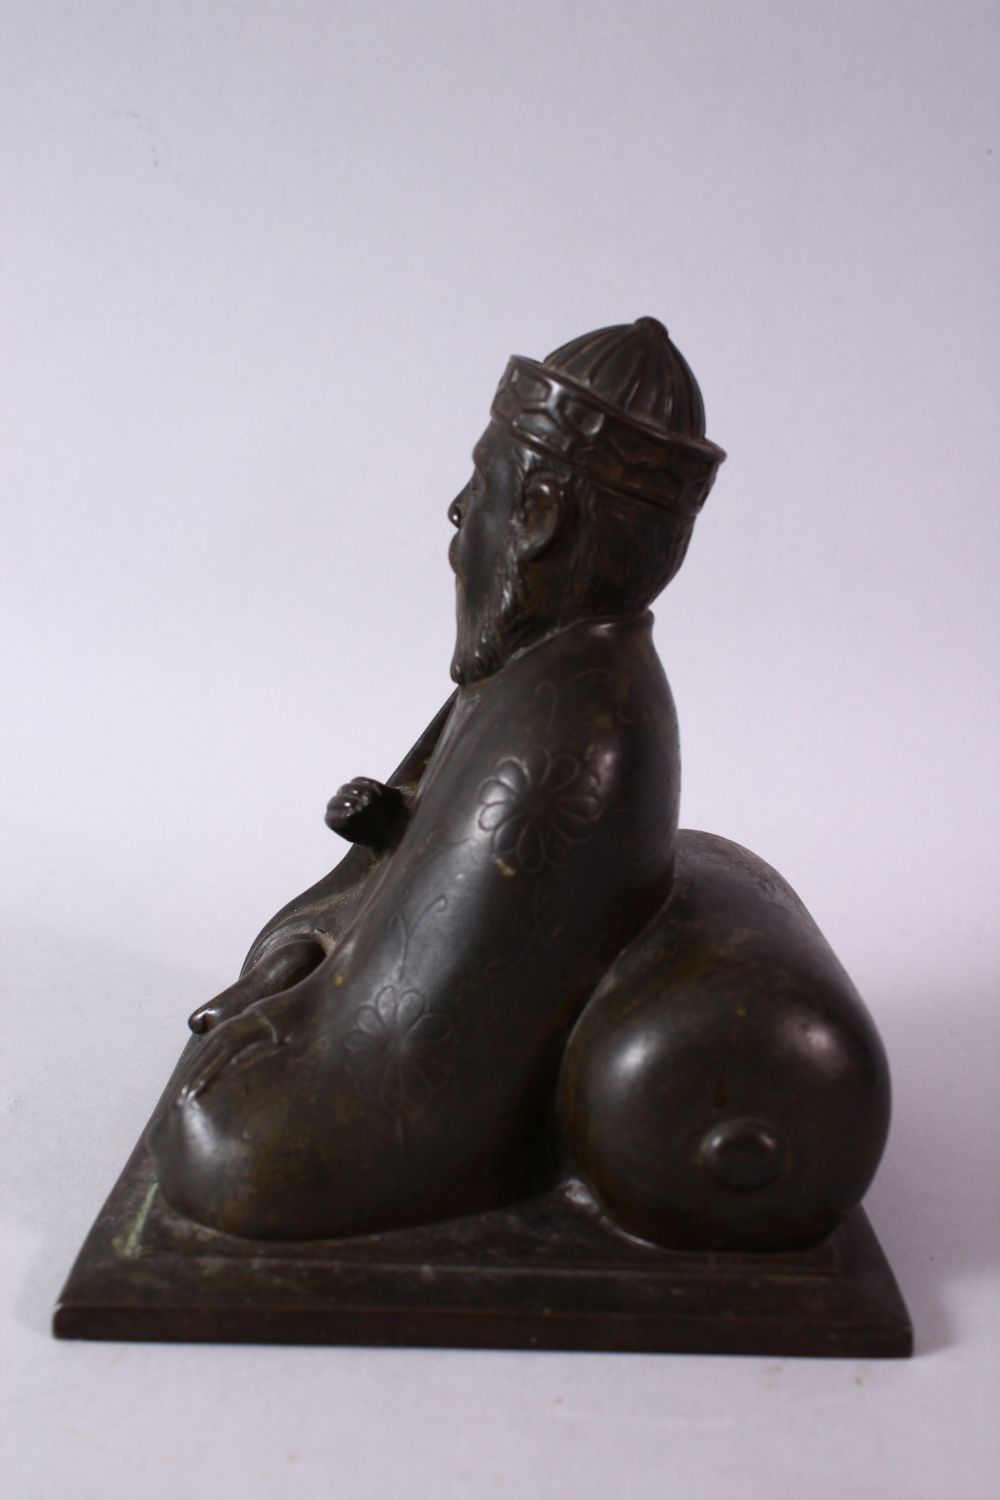 AN 18TH/19TH CENTURY BRONZE SEATED FIGURE OF A SCHOLAR, on a square base, 17cm high. - Image 5 of 6